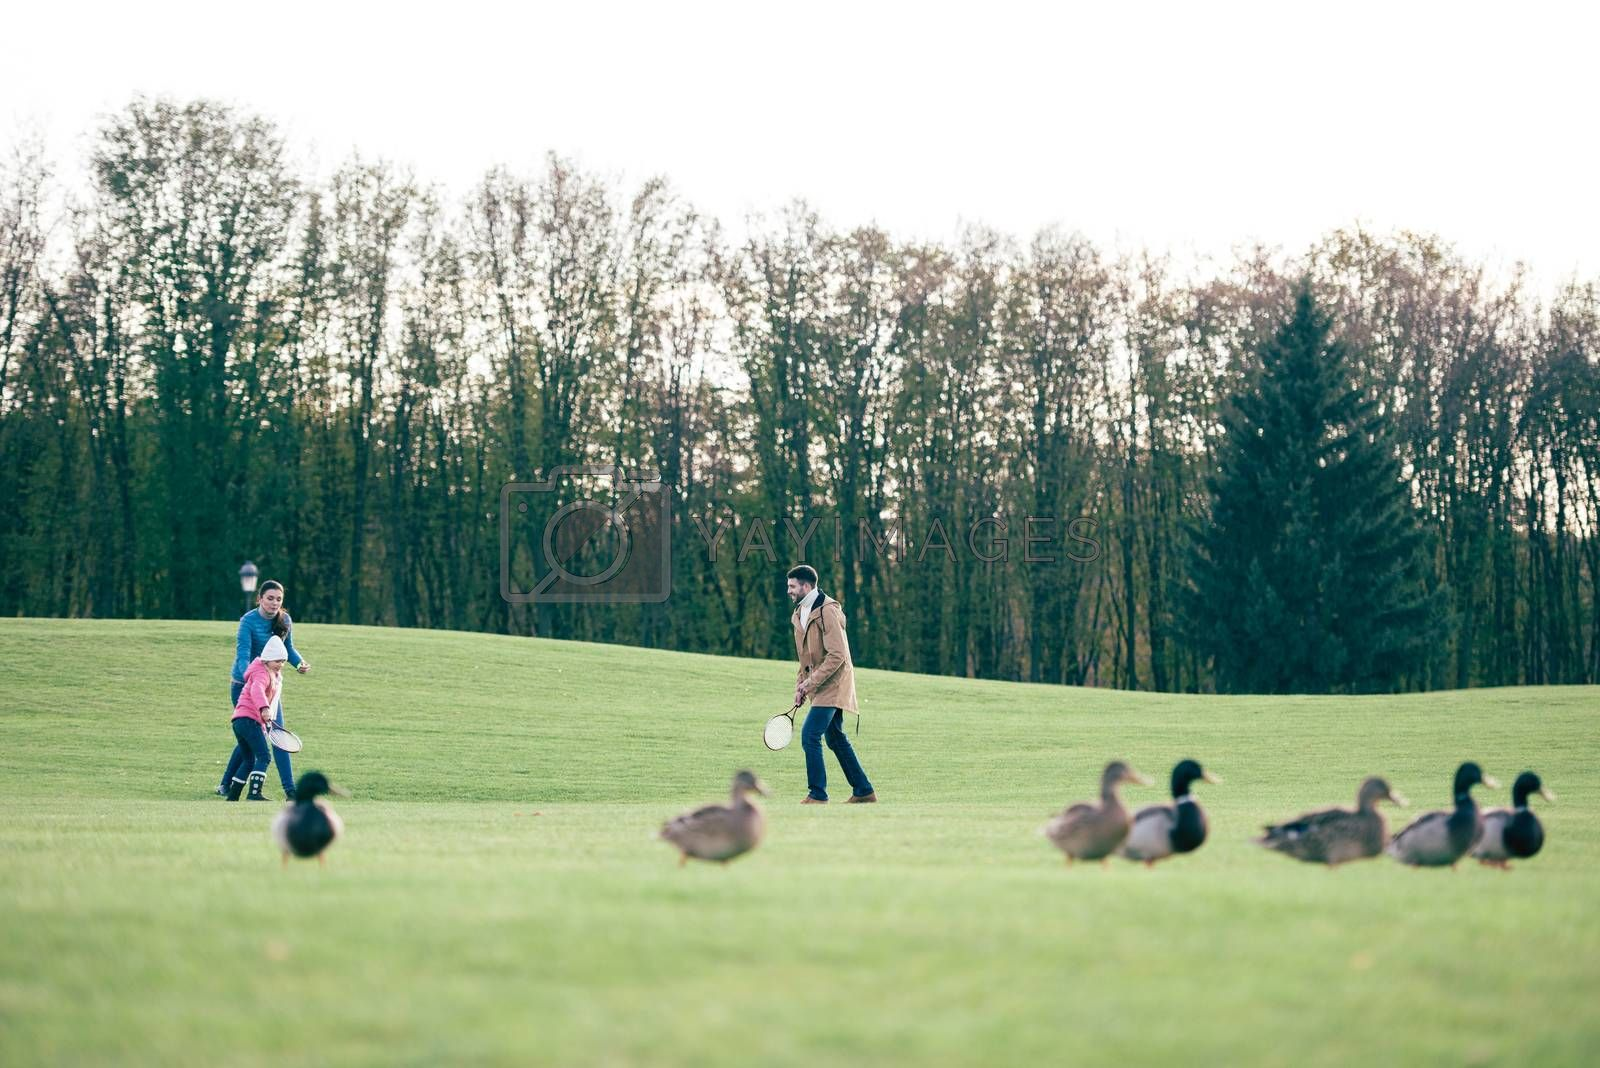 Happy family playing badminton on green lawn at sunny autumn day